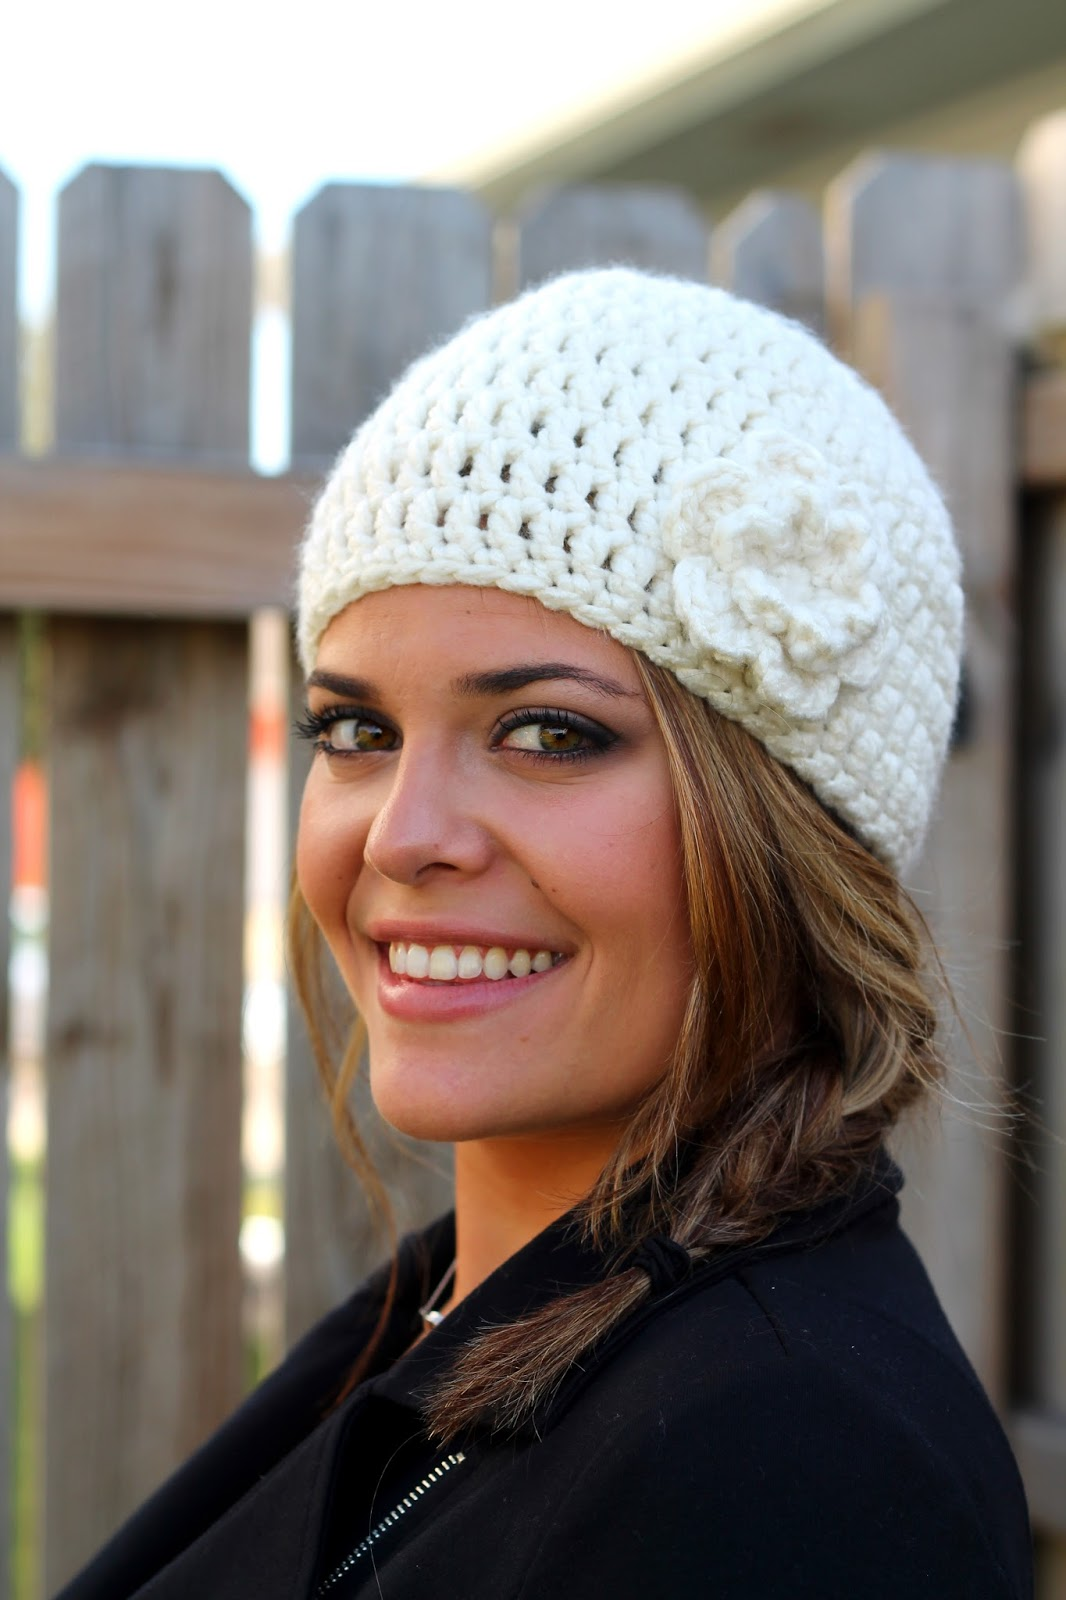 Easy Peasy And Fun: Crocheting The Day Away: Easy Peasy Woman's Winter Hat